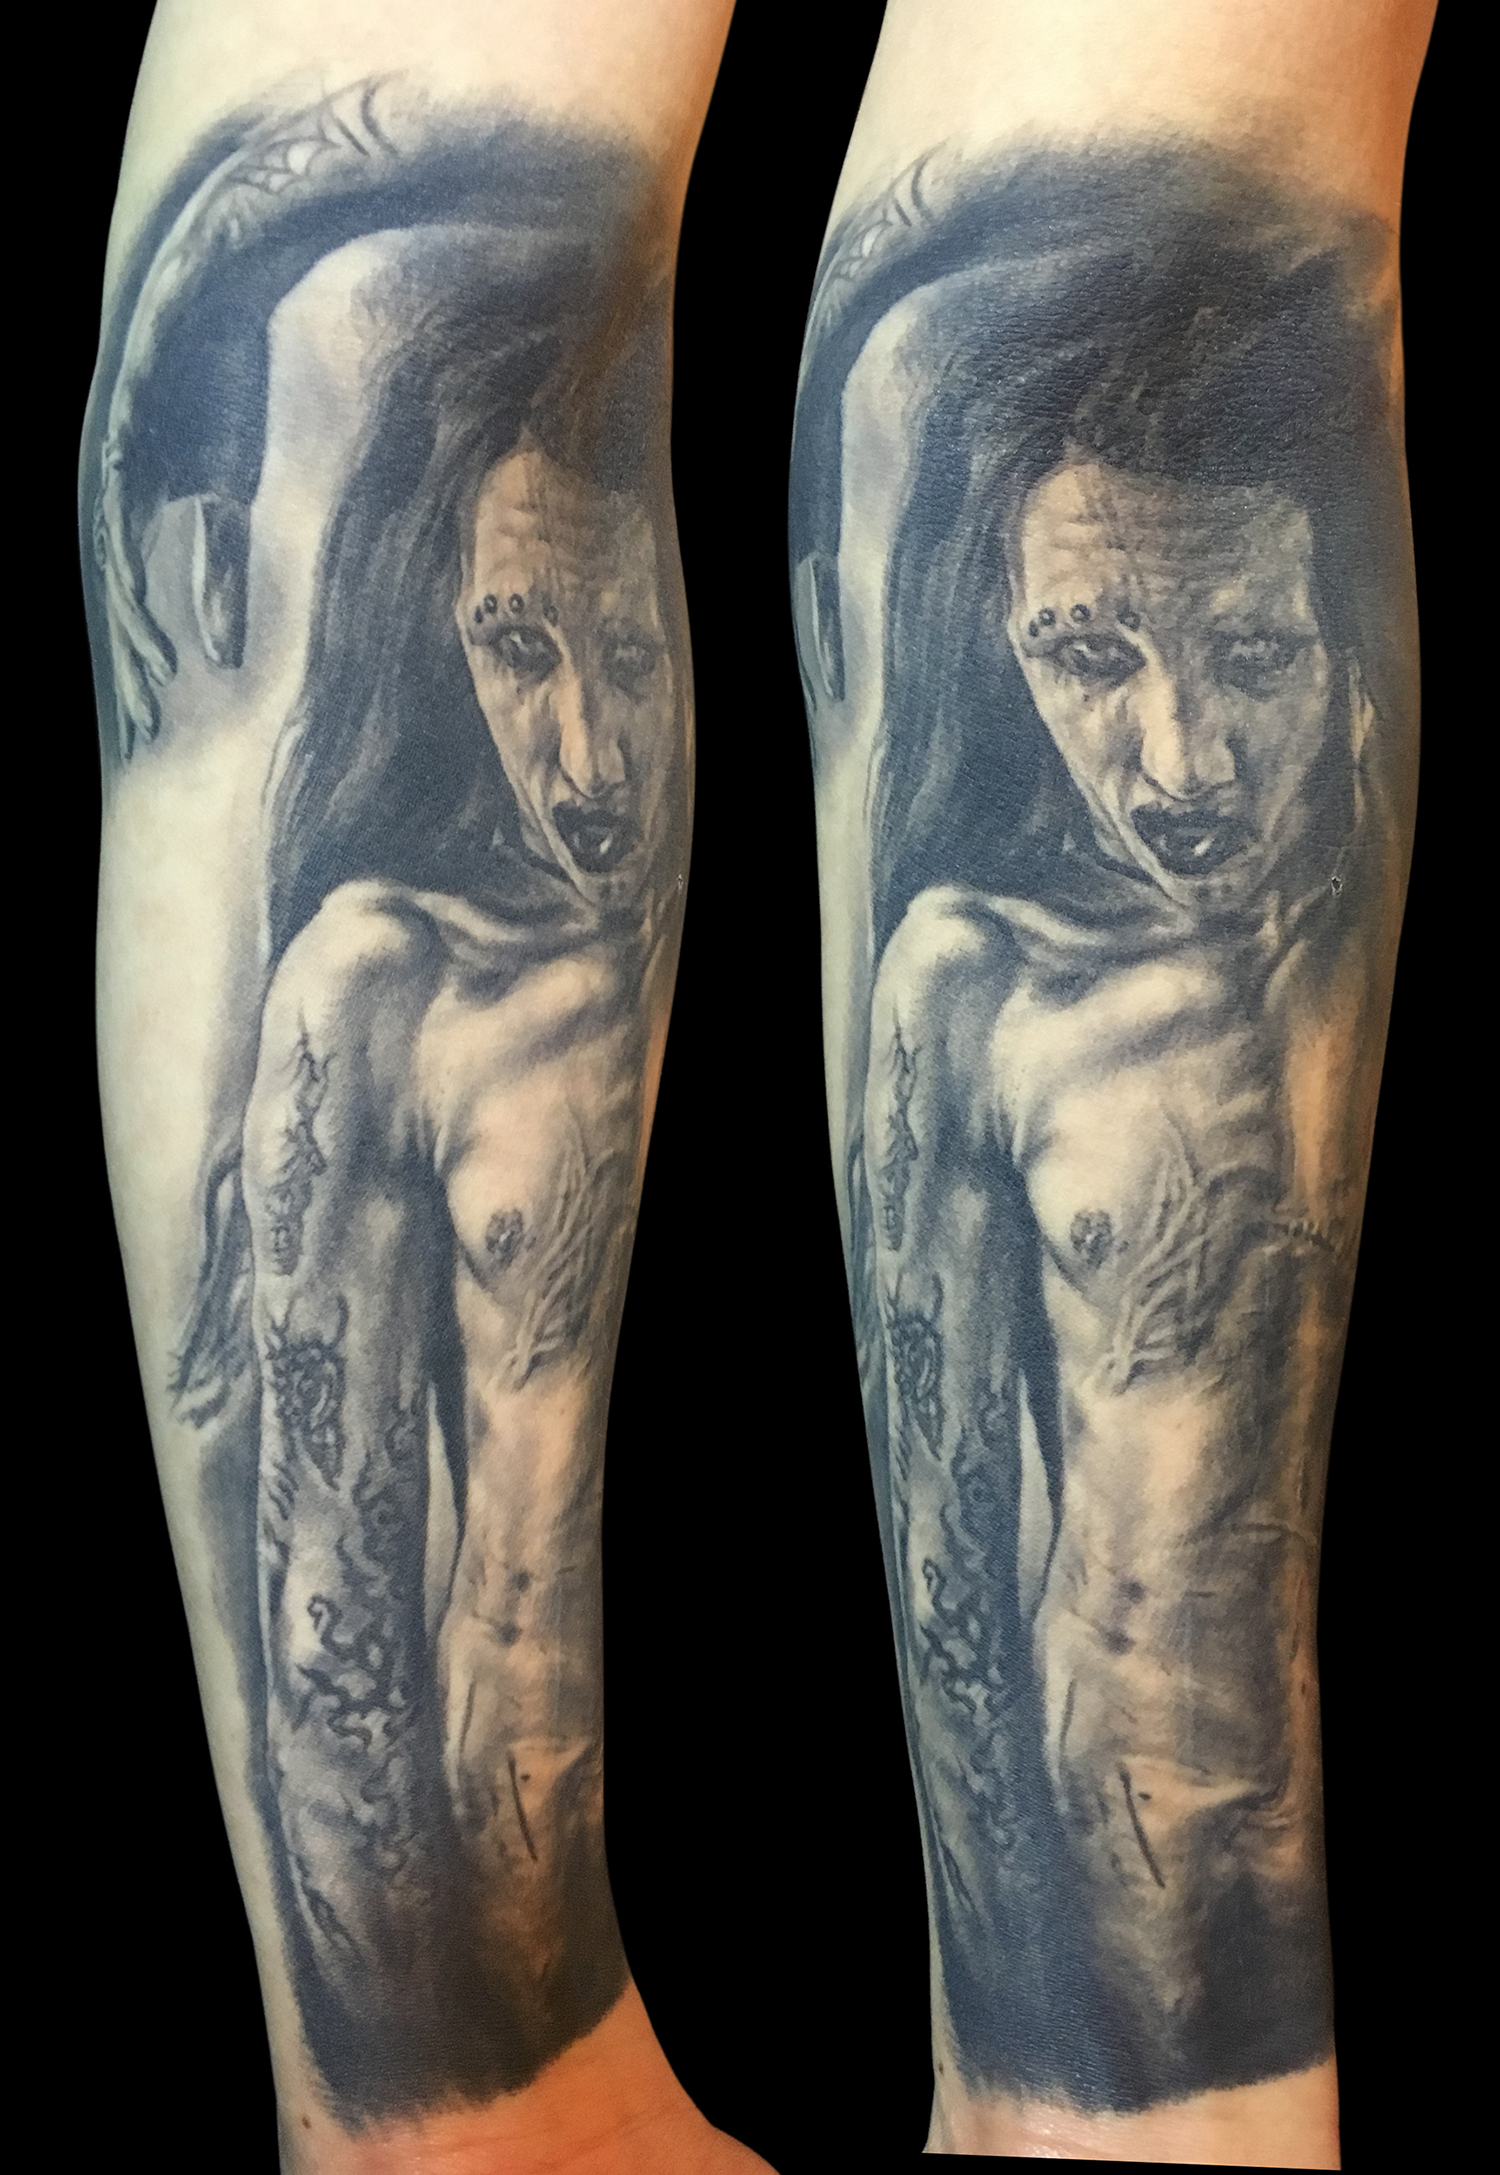 Black and Grey Marilyn Manson Portrait Tattoo, (healed)